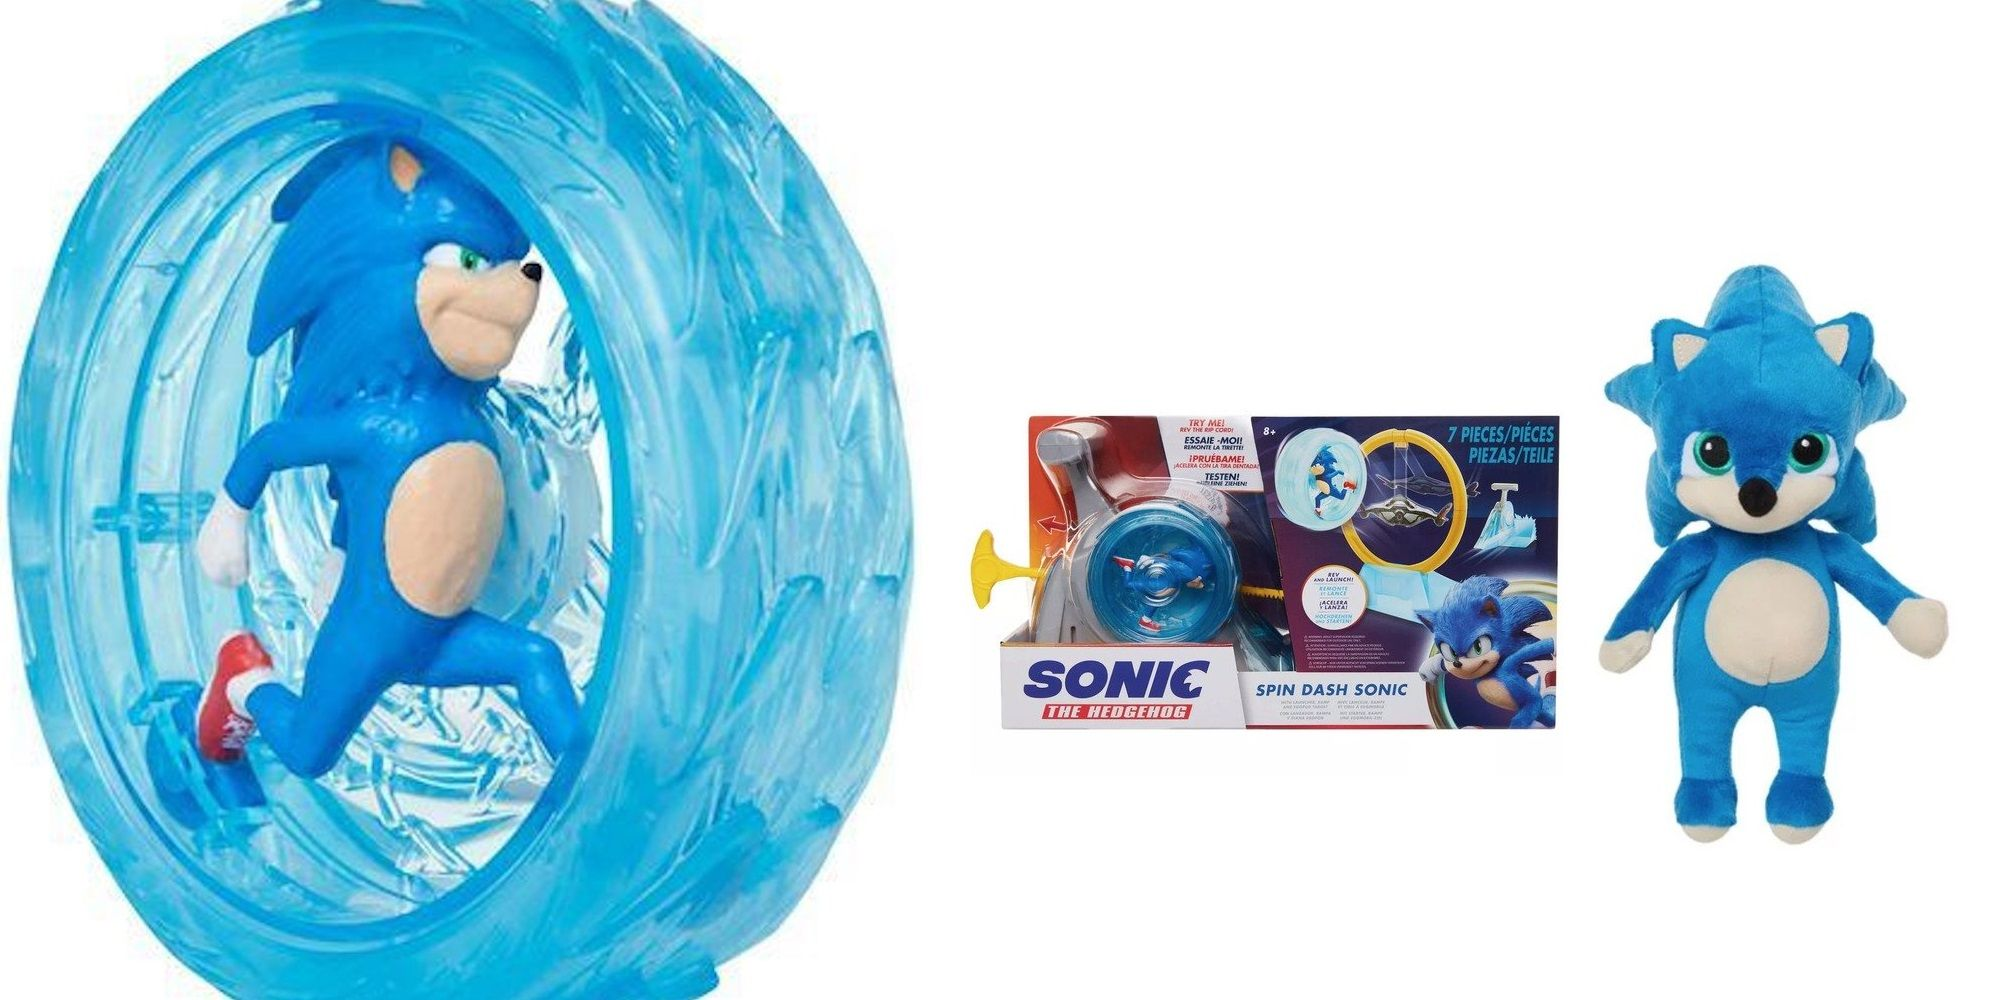 In360news Sonic The Hedgehog Movie Toys Based On Original Ugly Design